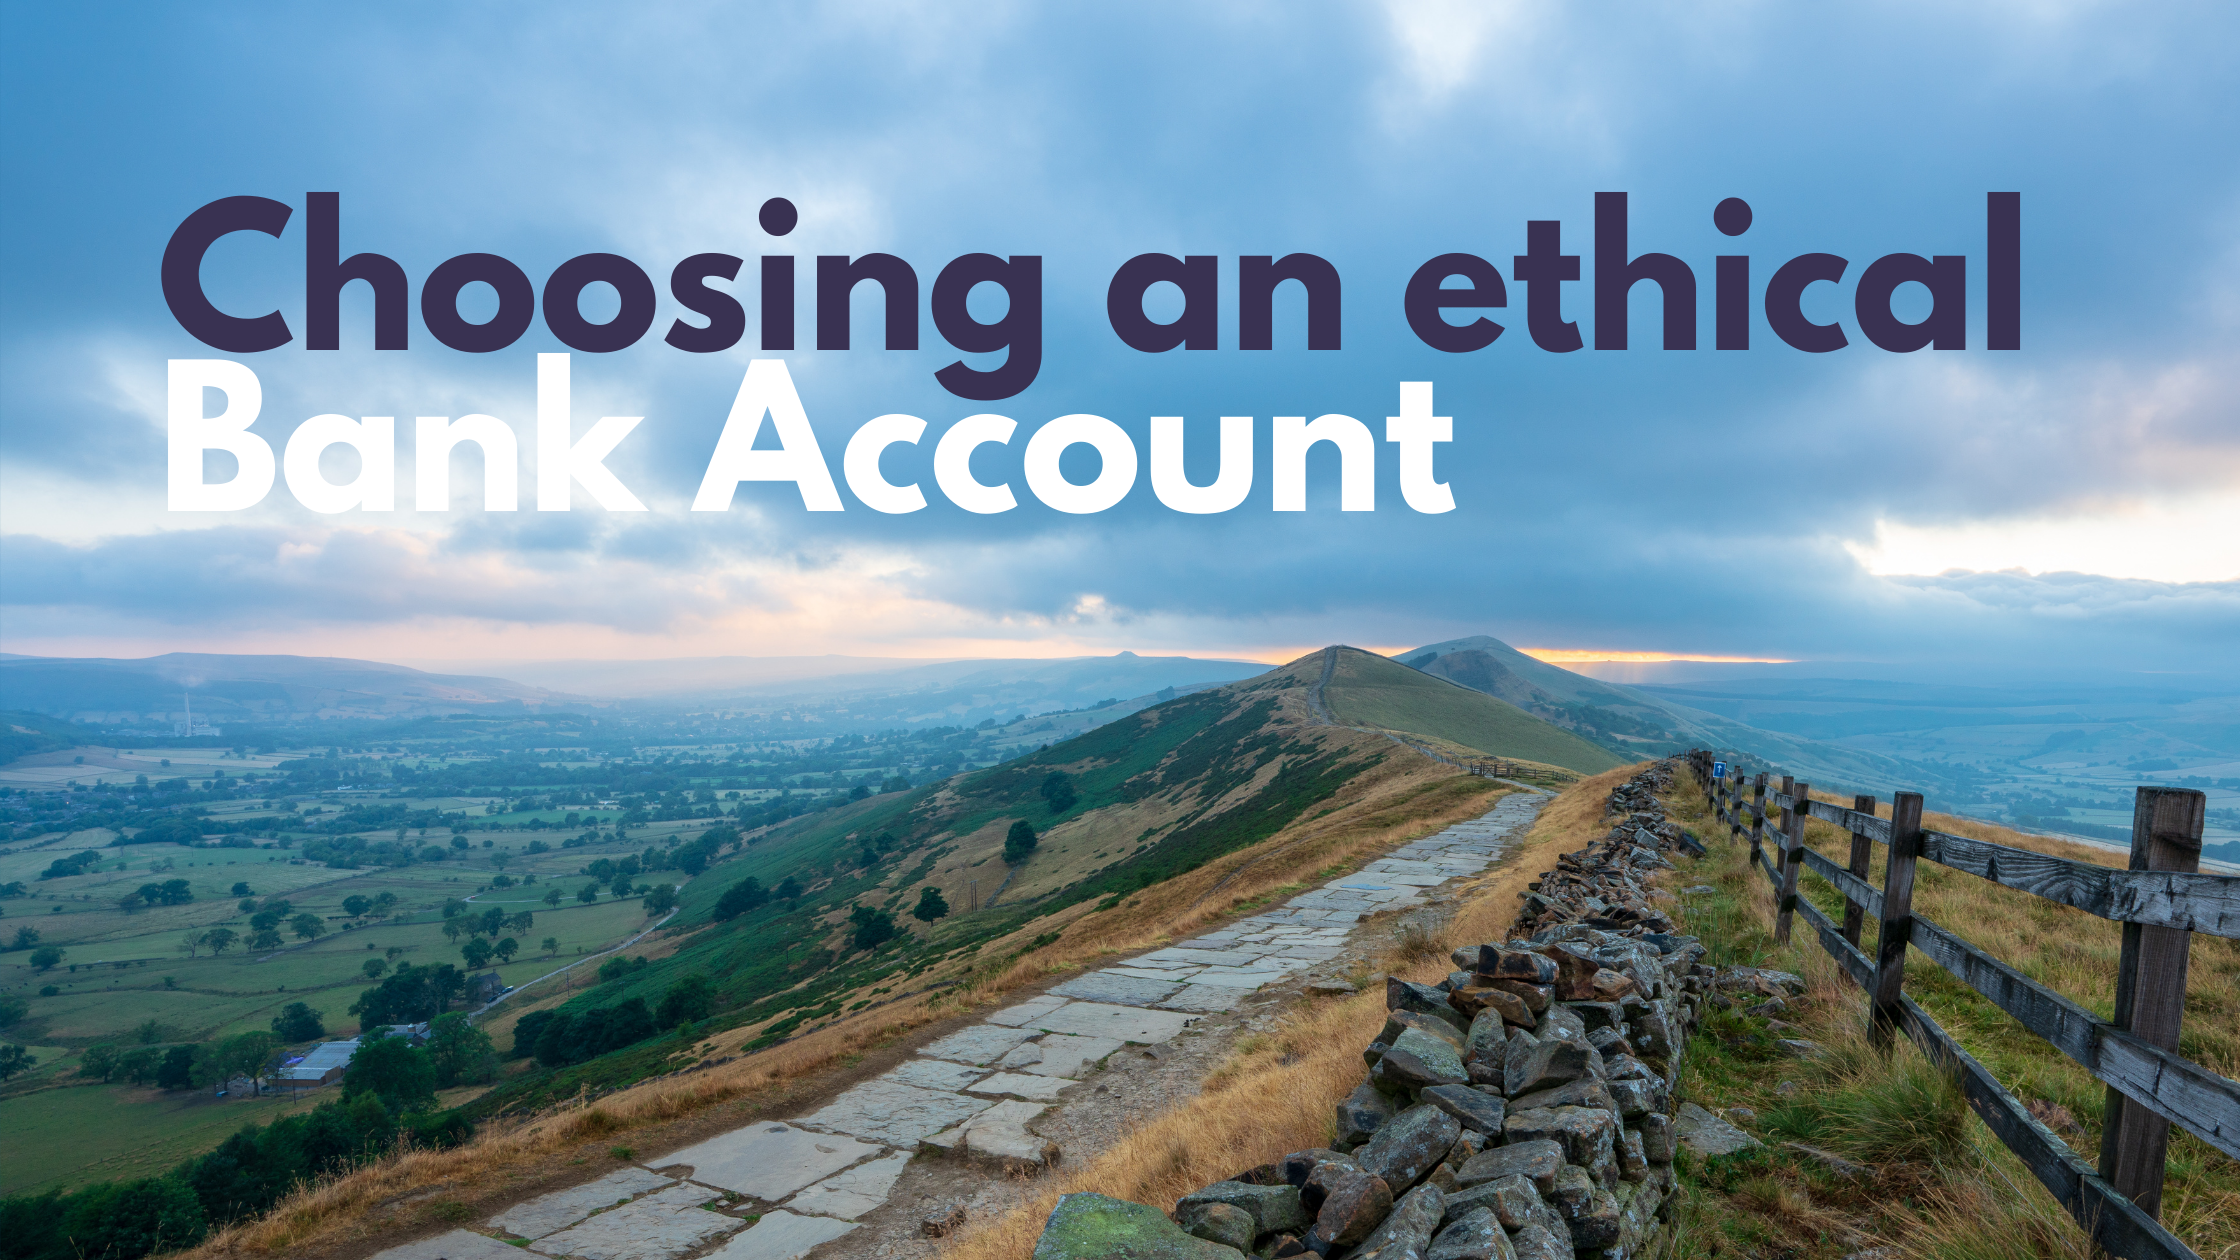 Choosing an ethical bank account for your church